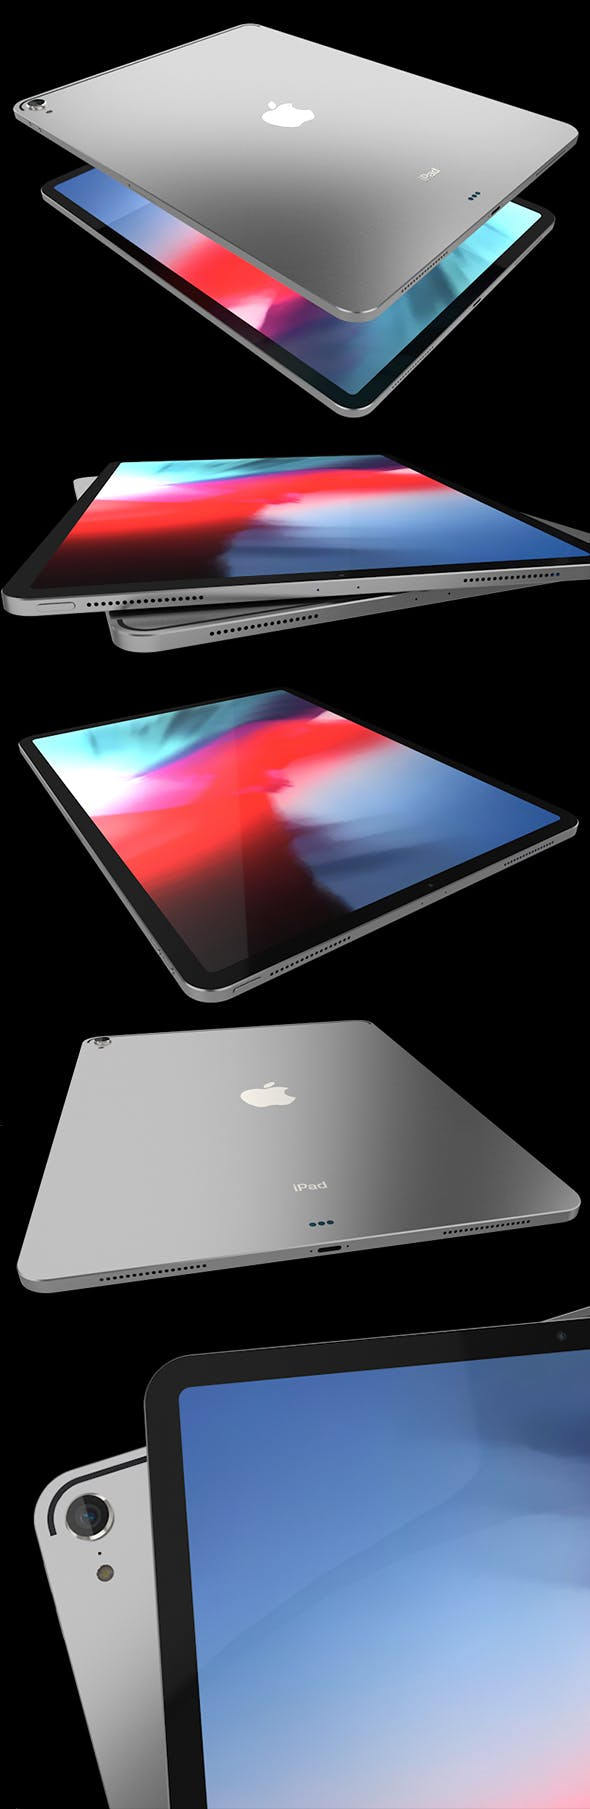 iPad Pro A12X - 3DOcean Item for Sale